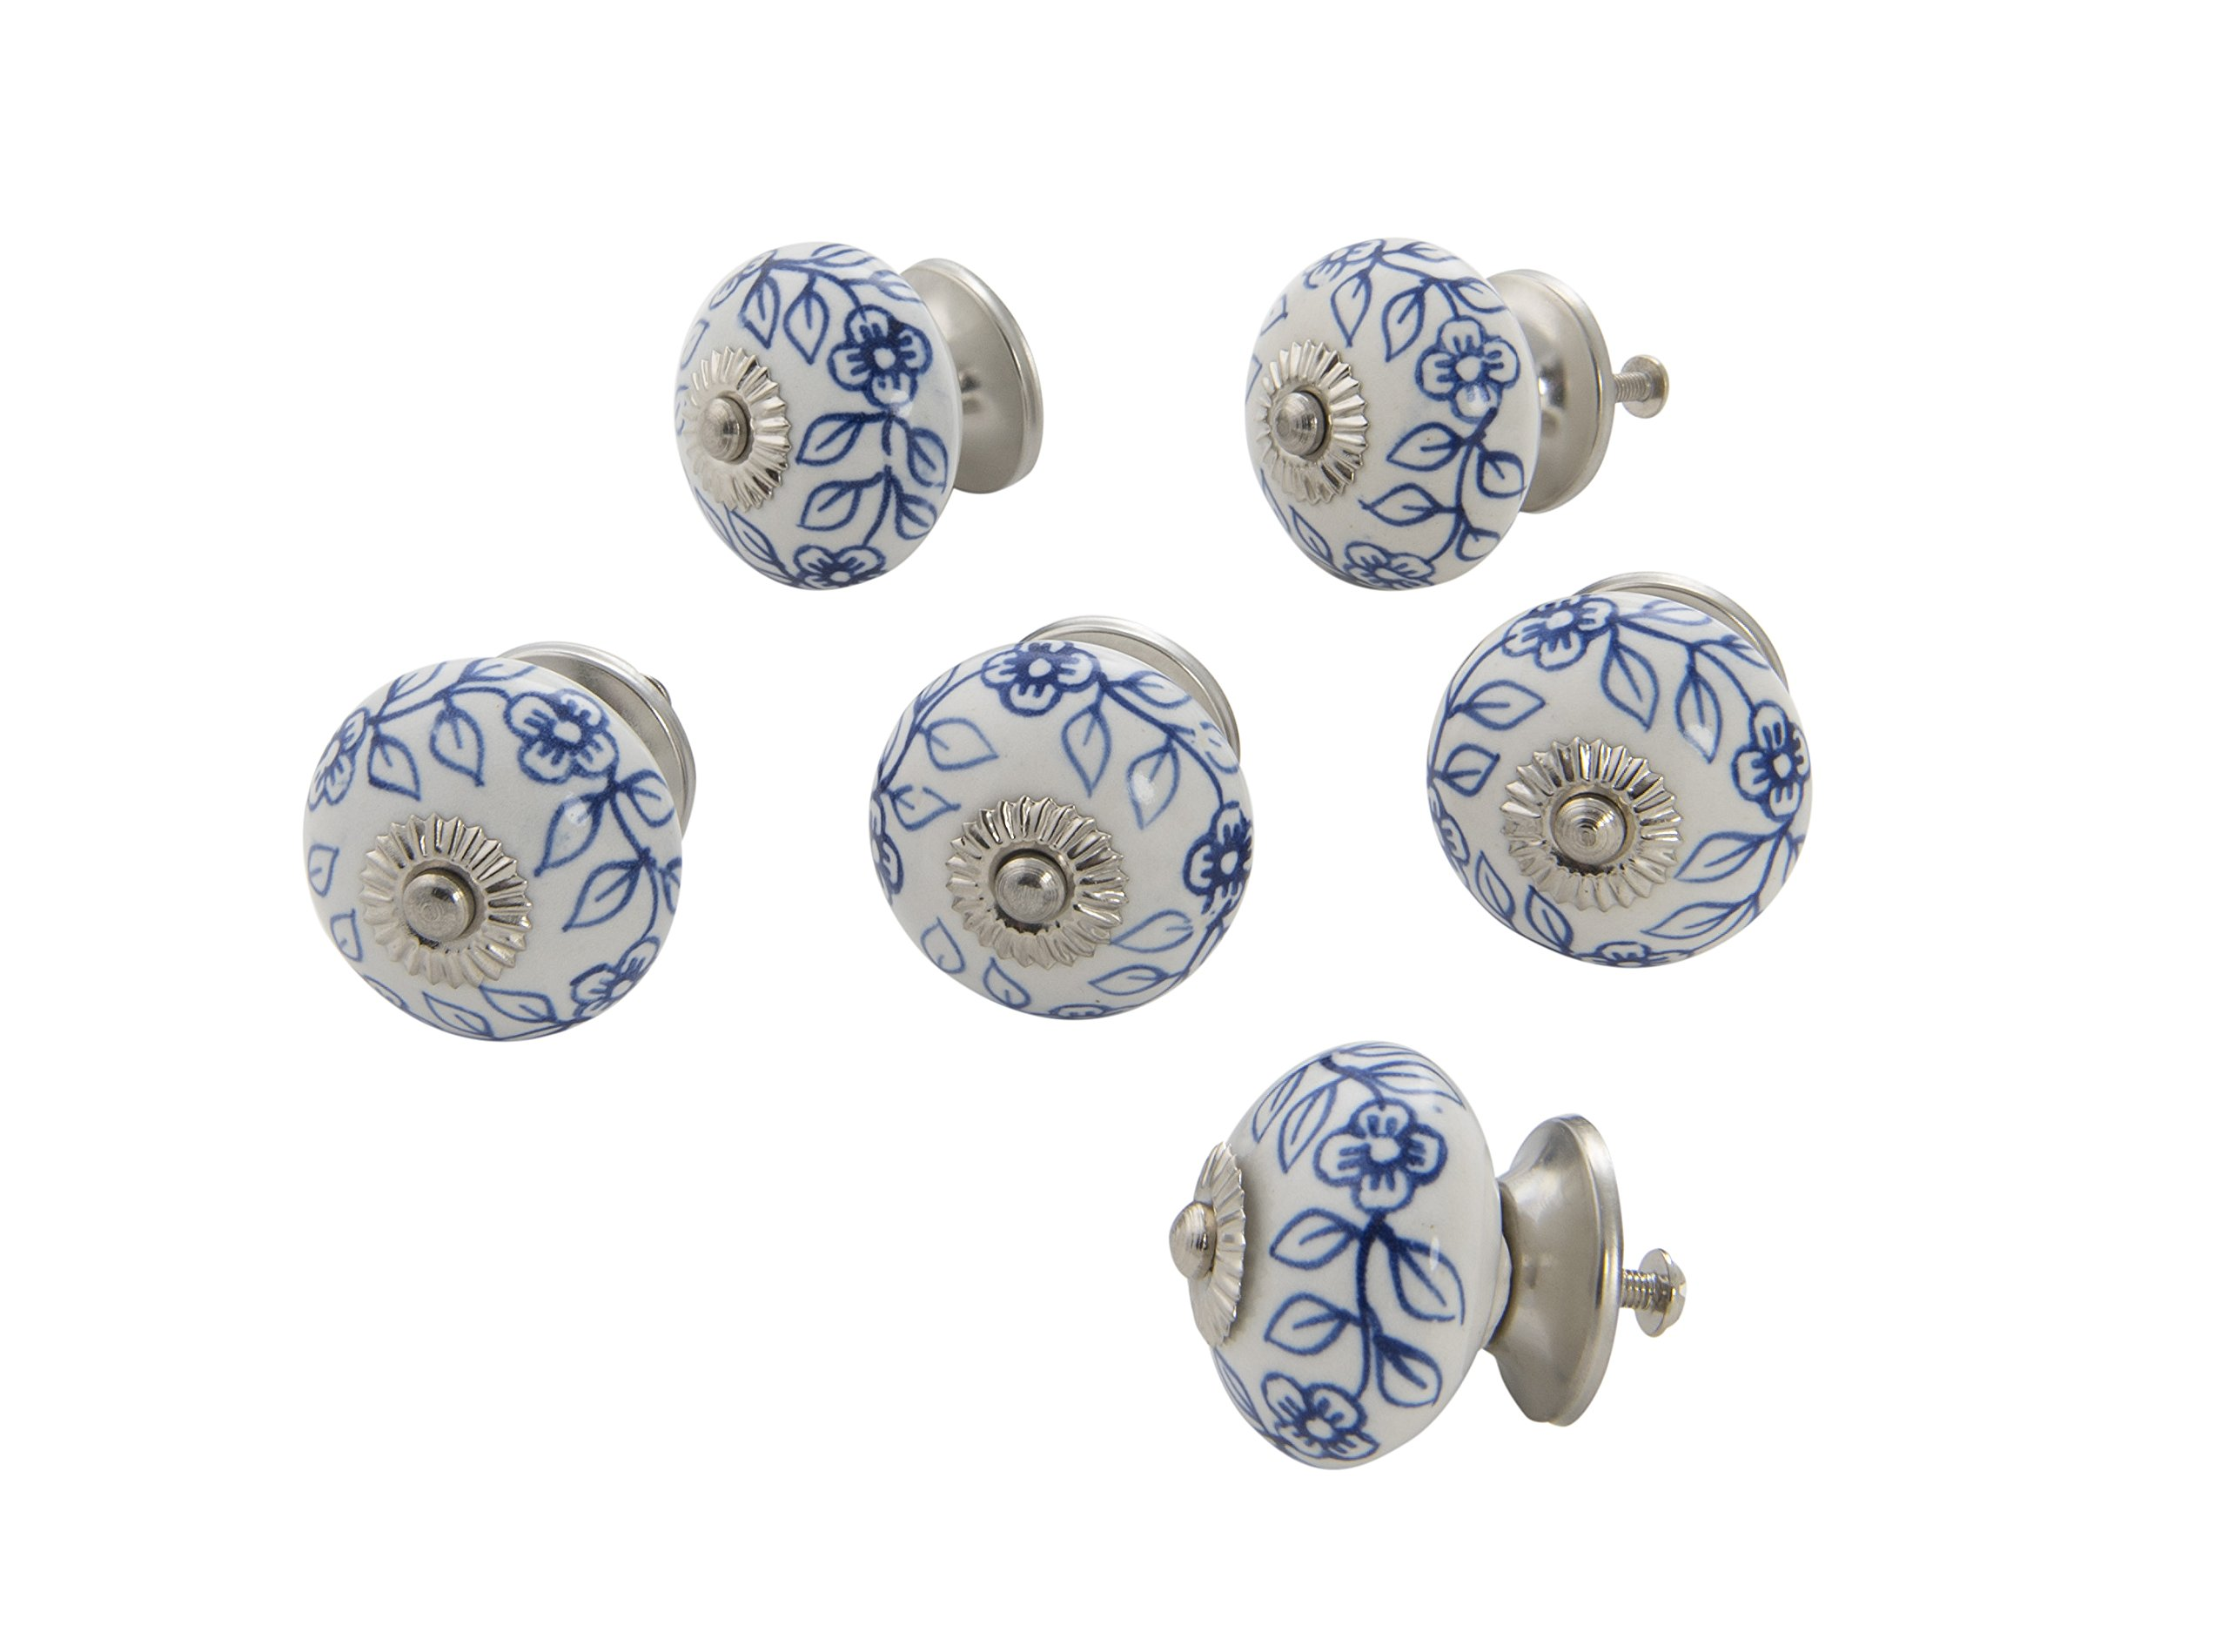 Dritz Home 47049A Ceramic Delft Ball Knob Handcrafted Knobs for Cabinets & Drawers